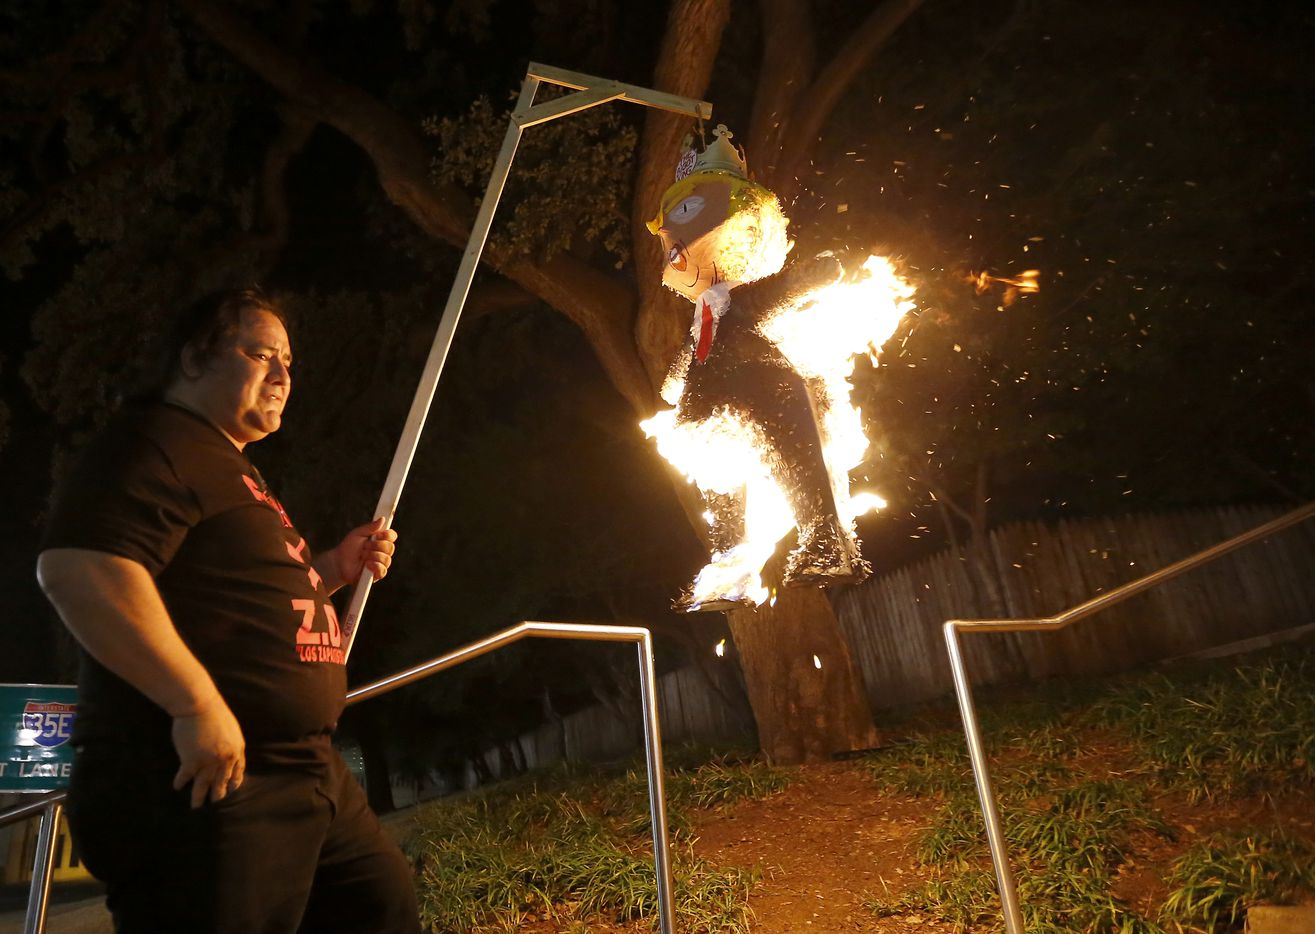 Leroy Peña holds a burning President Donald Trump pinata during a rally organized by the community group Resistance at Dealey Plaza in Dallas, Friday, Jan. 20, 2017.